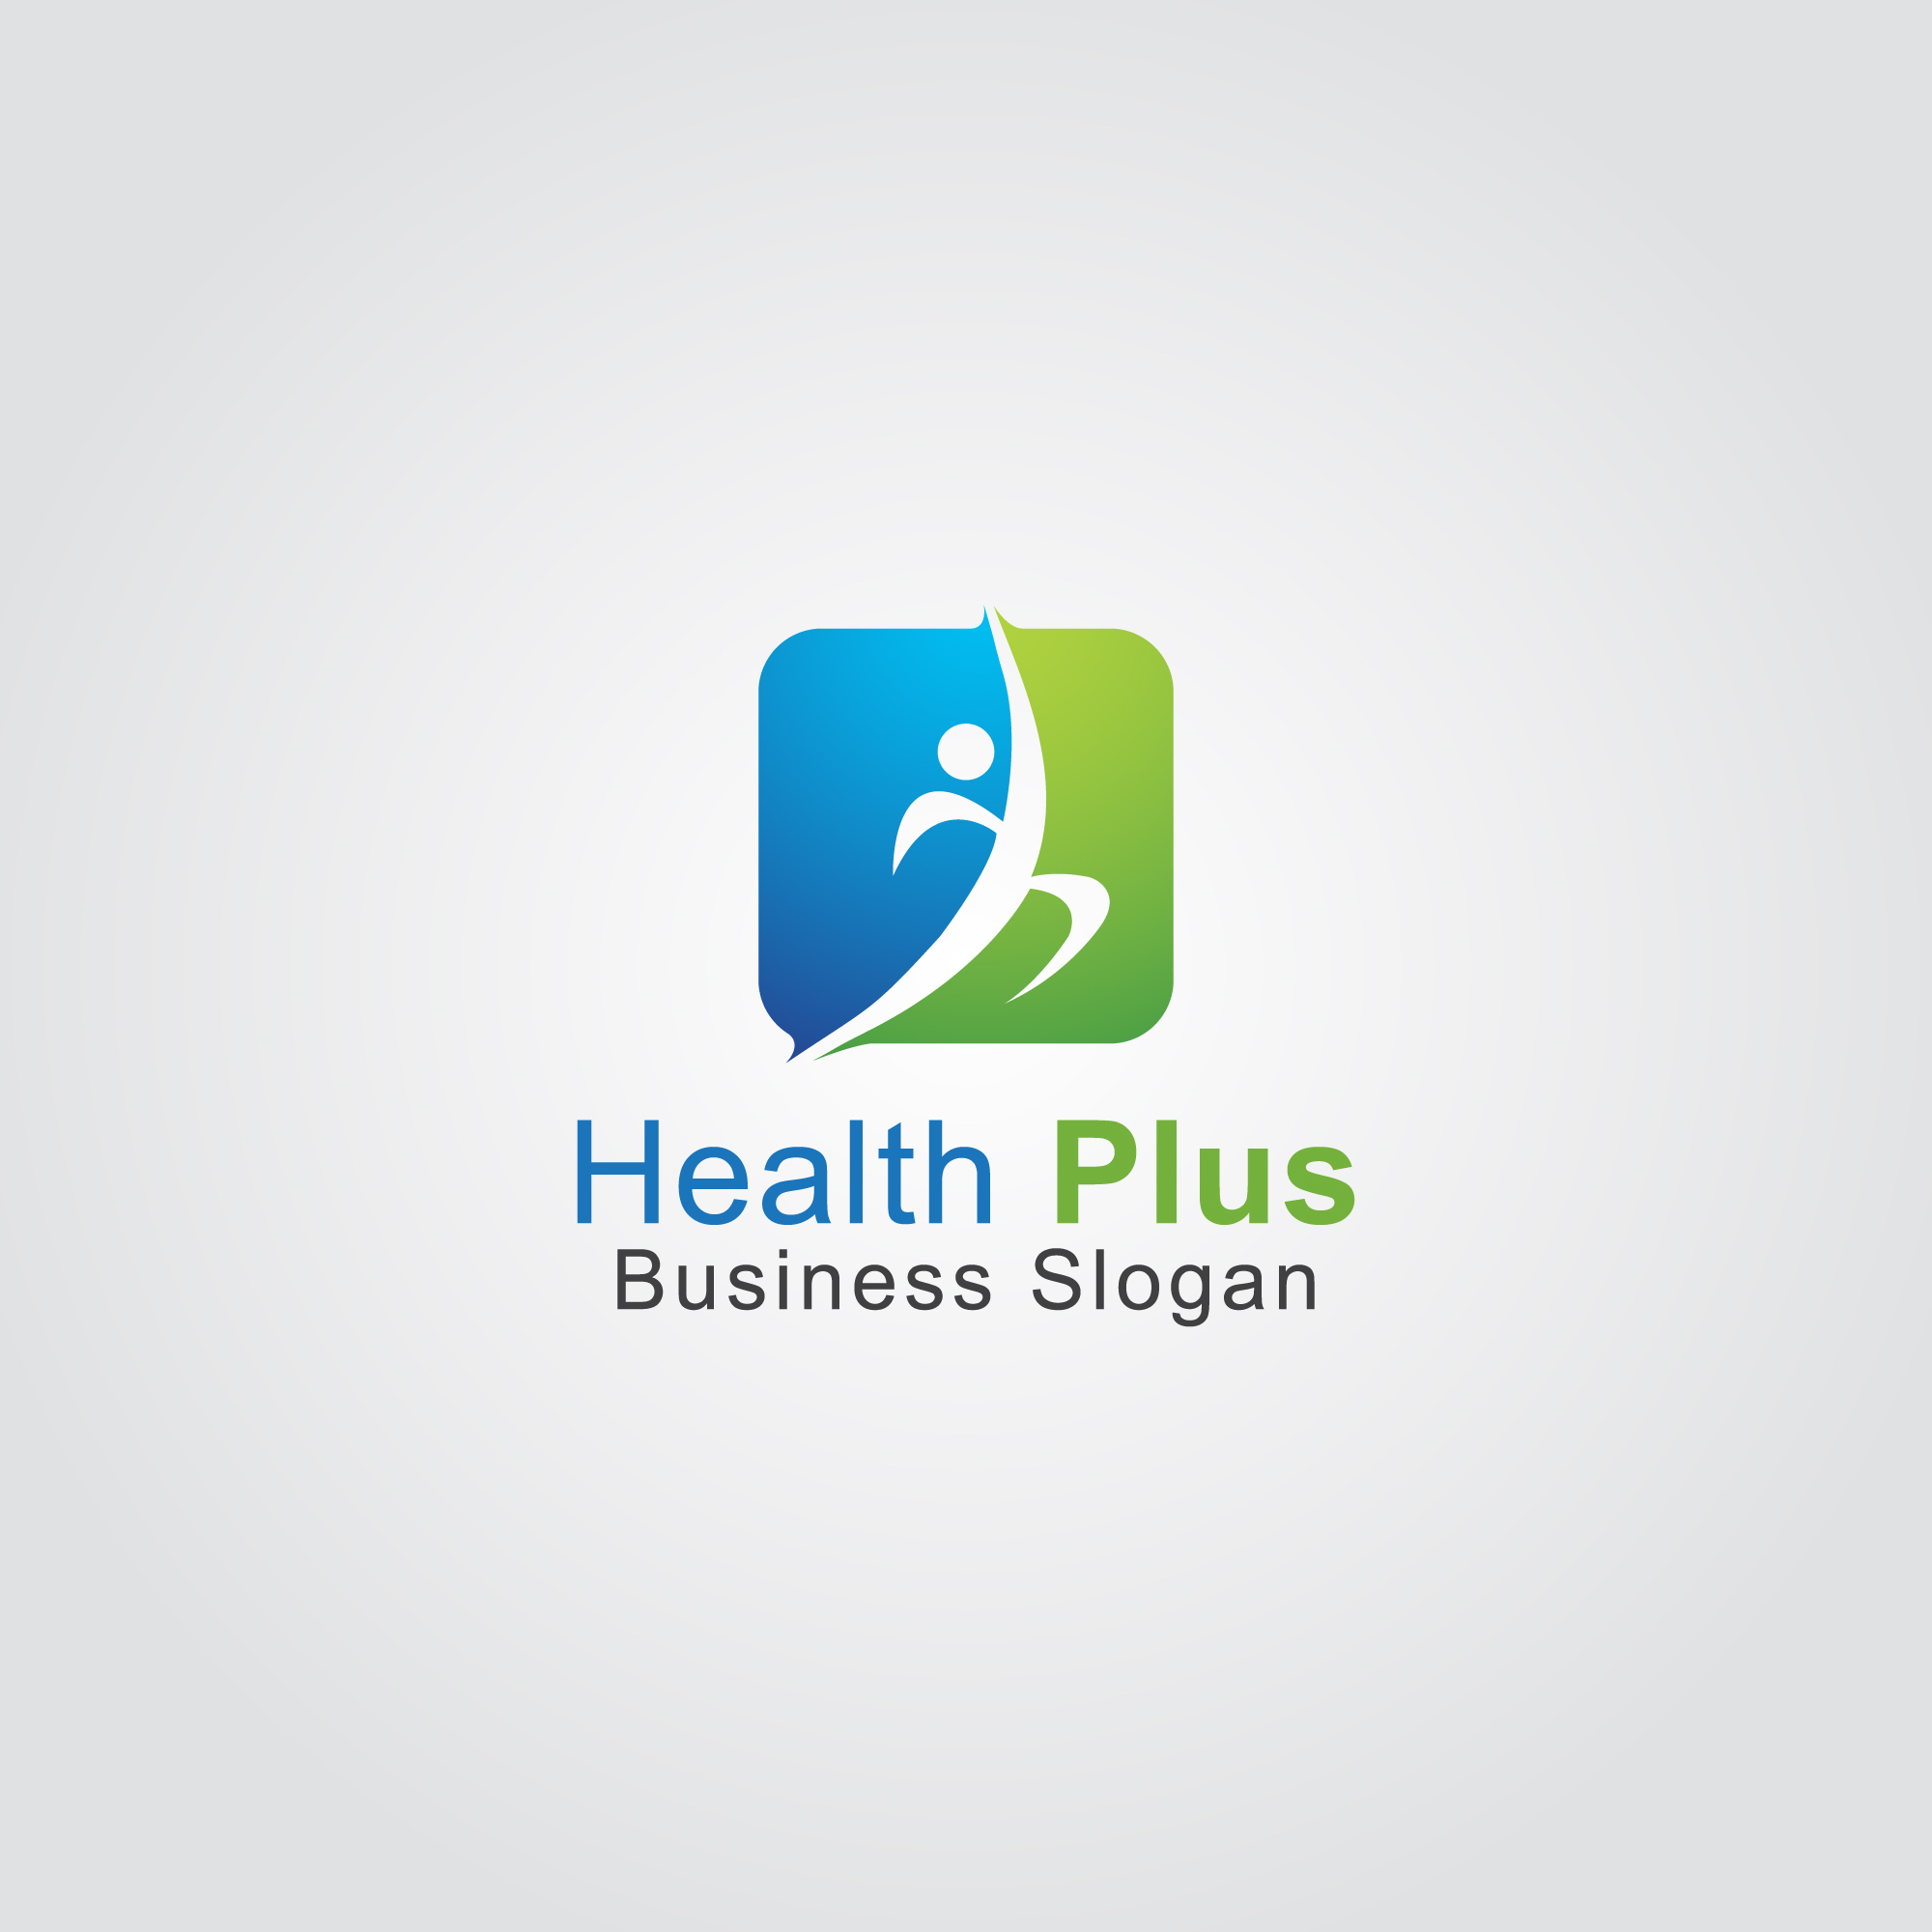 Human health logo design